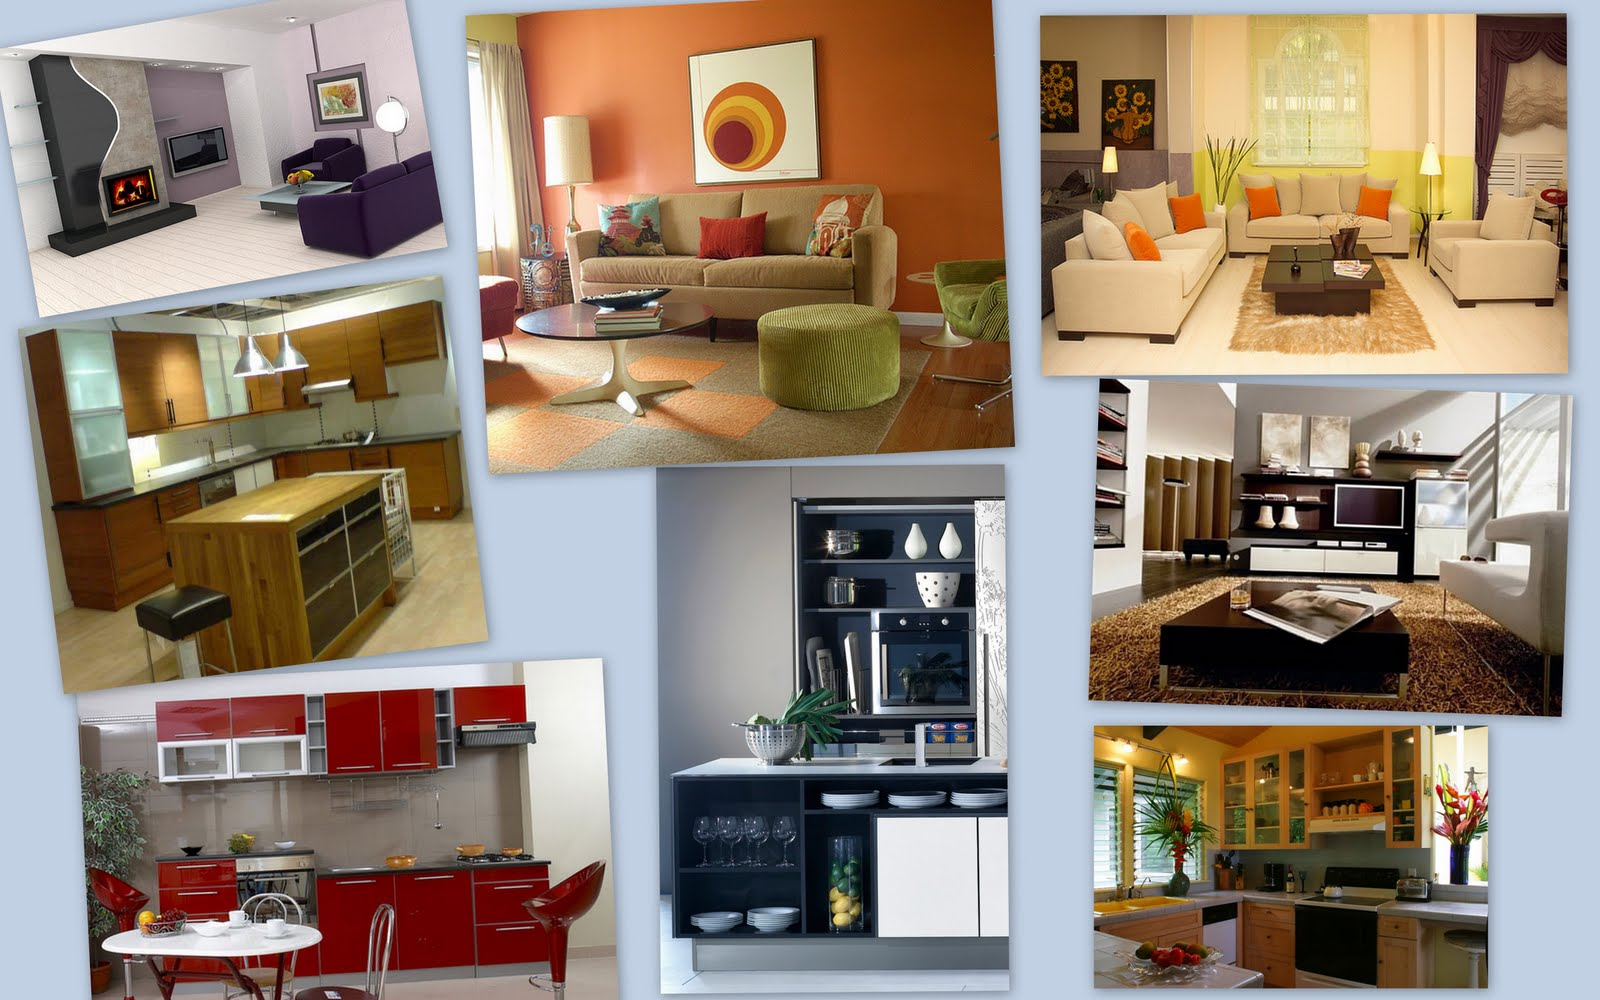 Interior designs and specifications office interiors - Interior design materials and specifications ...